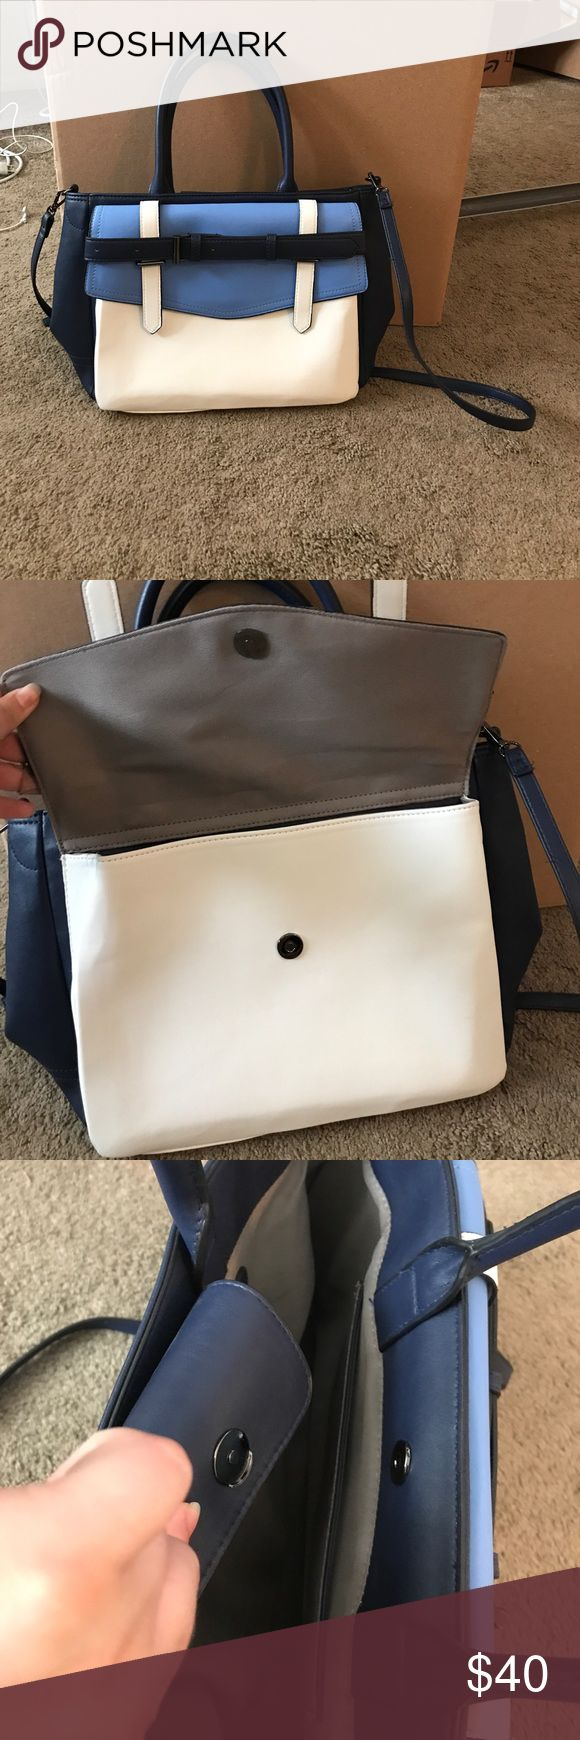 Reed blue and white tote bag NWOT Reed brand tote bag. Has 2 pockets, both magnetic clasps. Long and short handle. 2 inside pockets, one is zippered. Bags